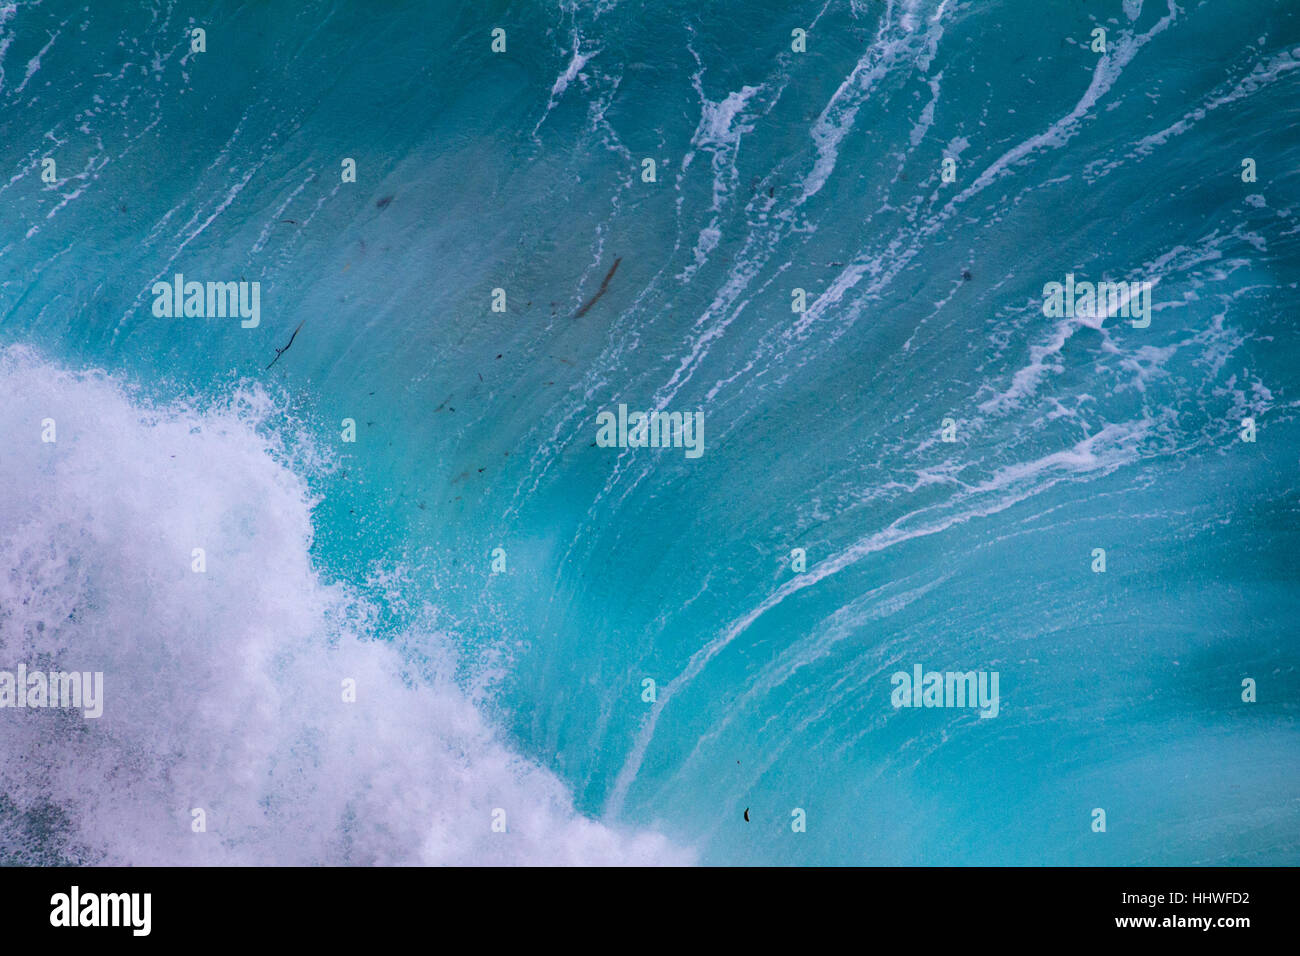 Aerial view of crashing waves at Cape Point, South Africa - Stock Image